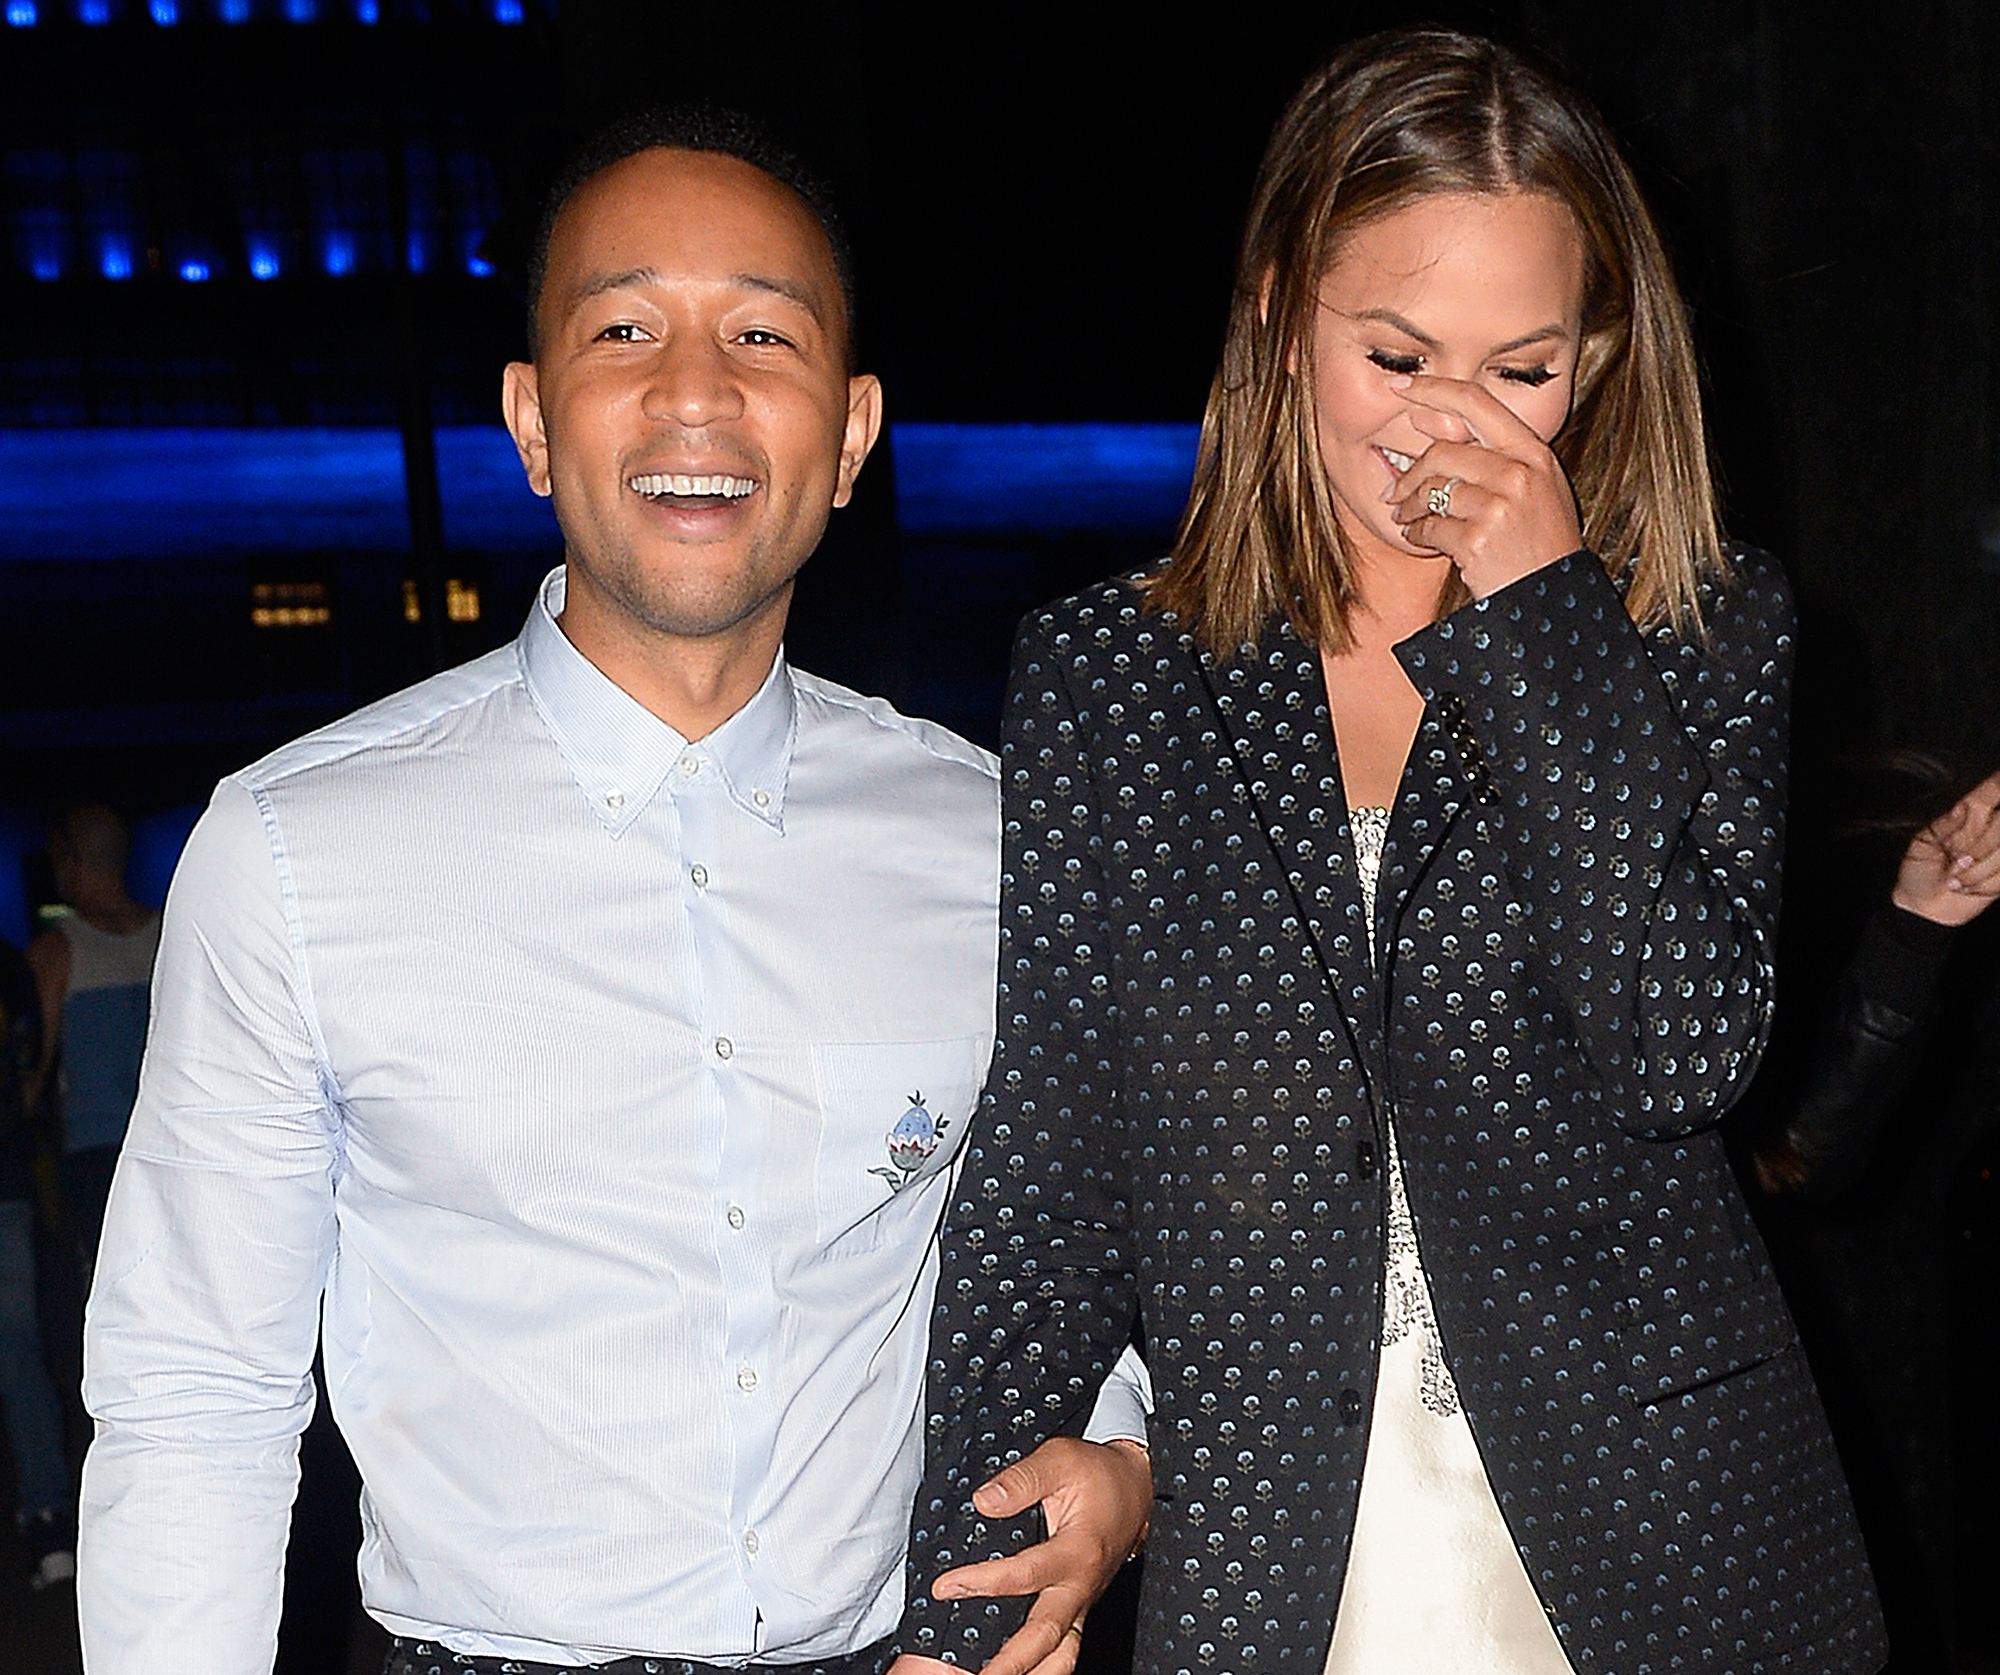 EXCLUSIVE: Chrissy Teigen and John Legend are all smiles as they head out to party in New York City